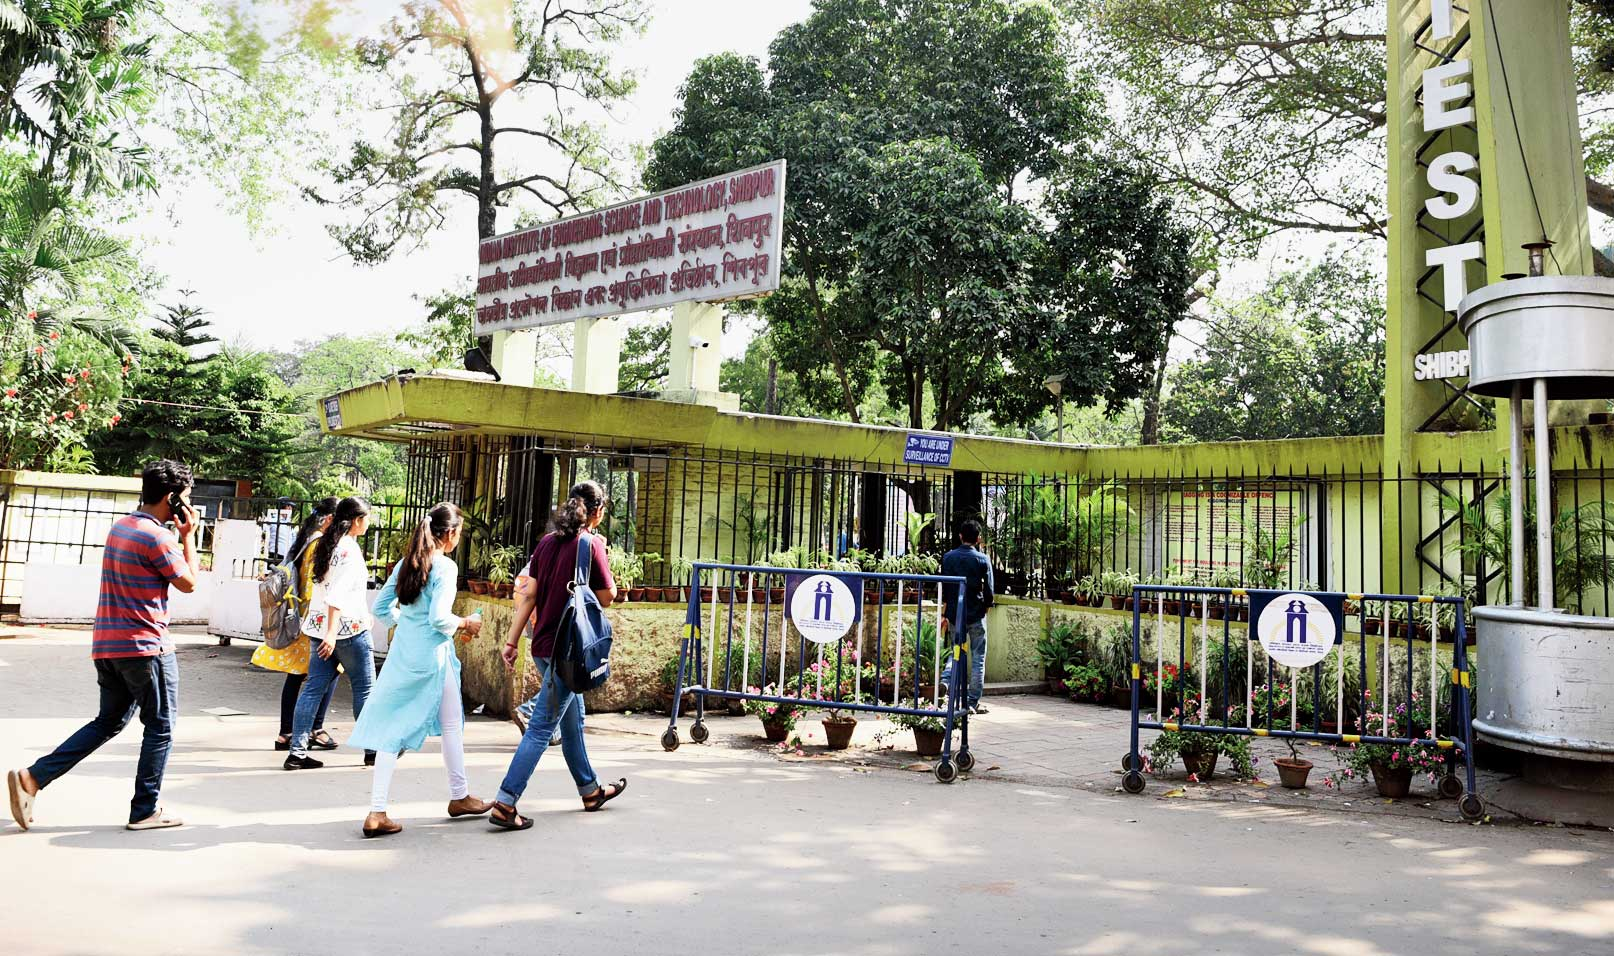 Barricades placed in front of the IIEST gate on Sunday; a newly-installed CCTV camera at the gate.